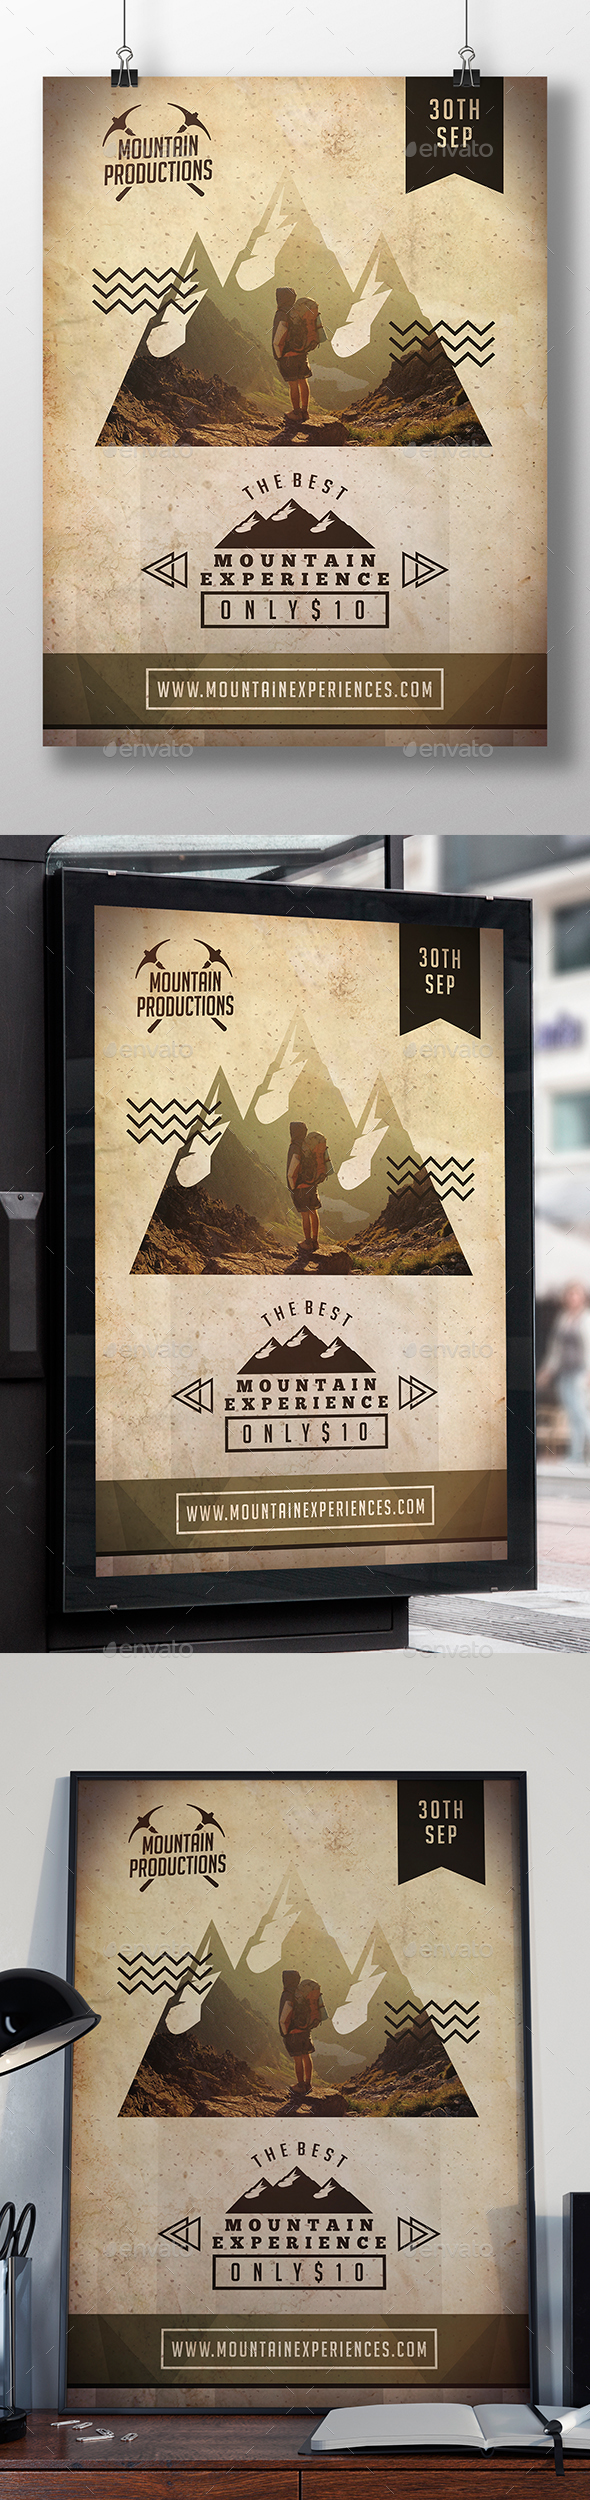 GraphicRiver Mountain Experience Flyer Template 20672338